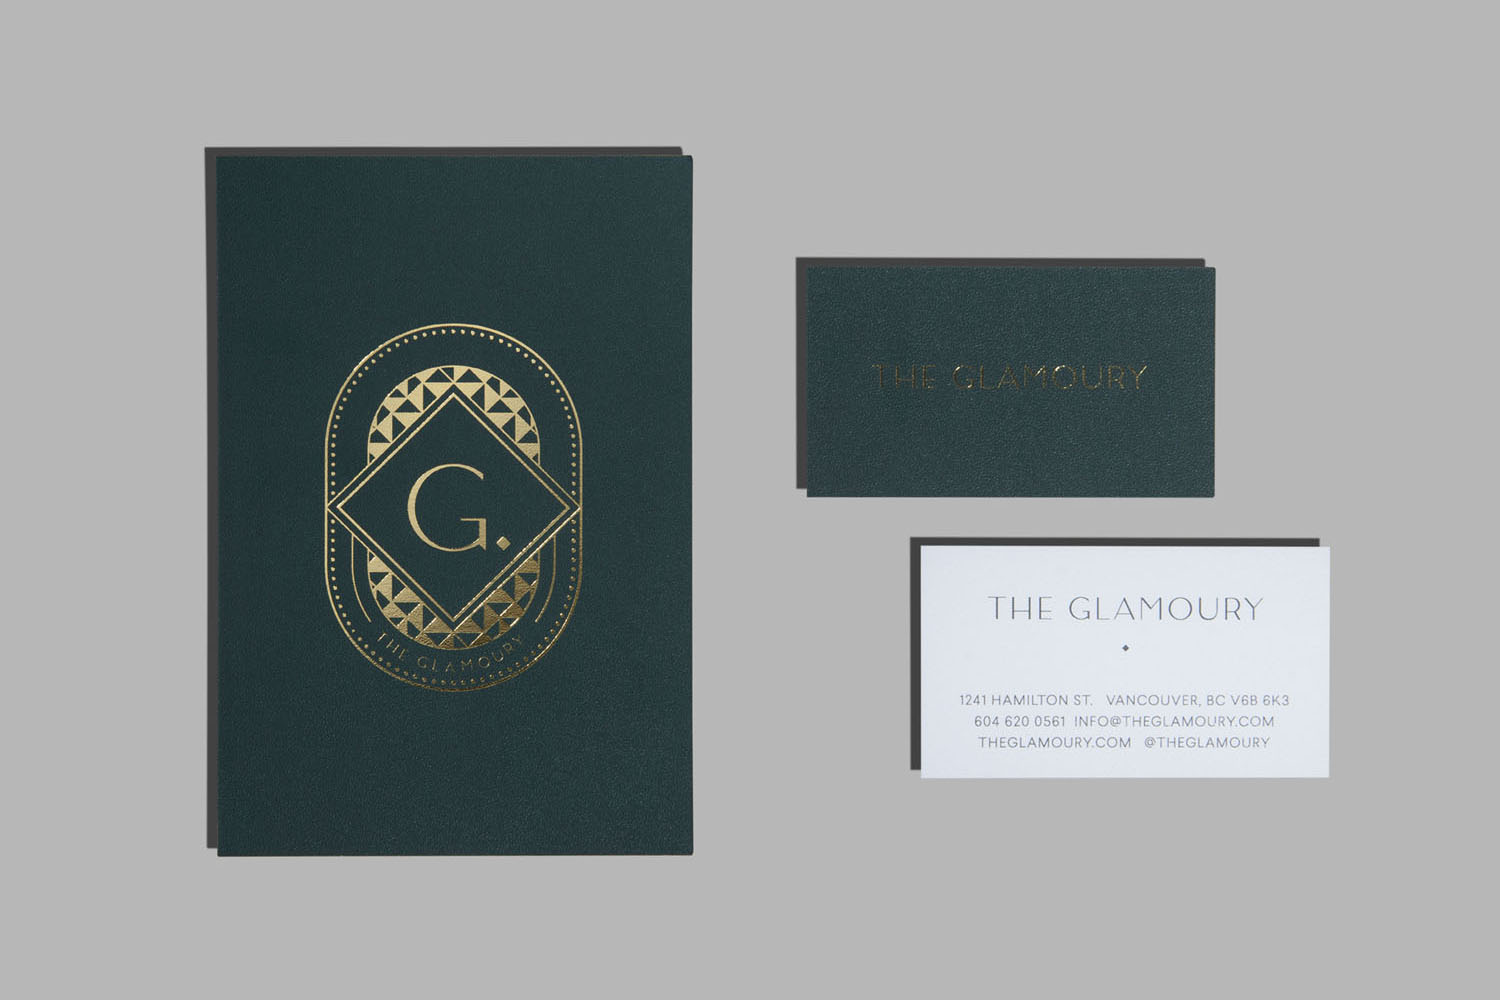 Brand identity and gold block foiled business cards by Canadian studio Glasfurd & Walker for Vancouver-based luxury make-up and styling salon The Glamoury.